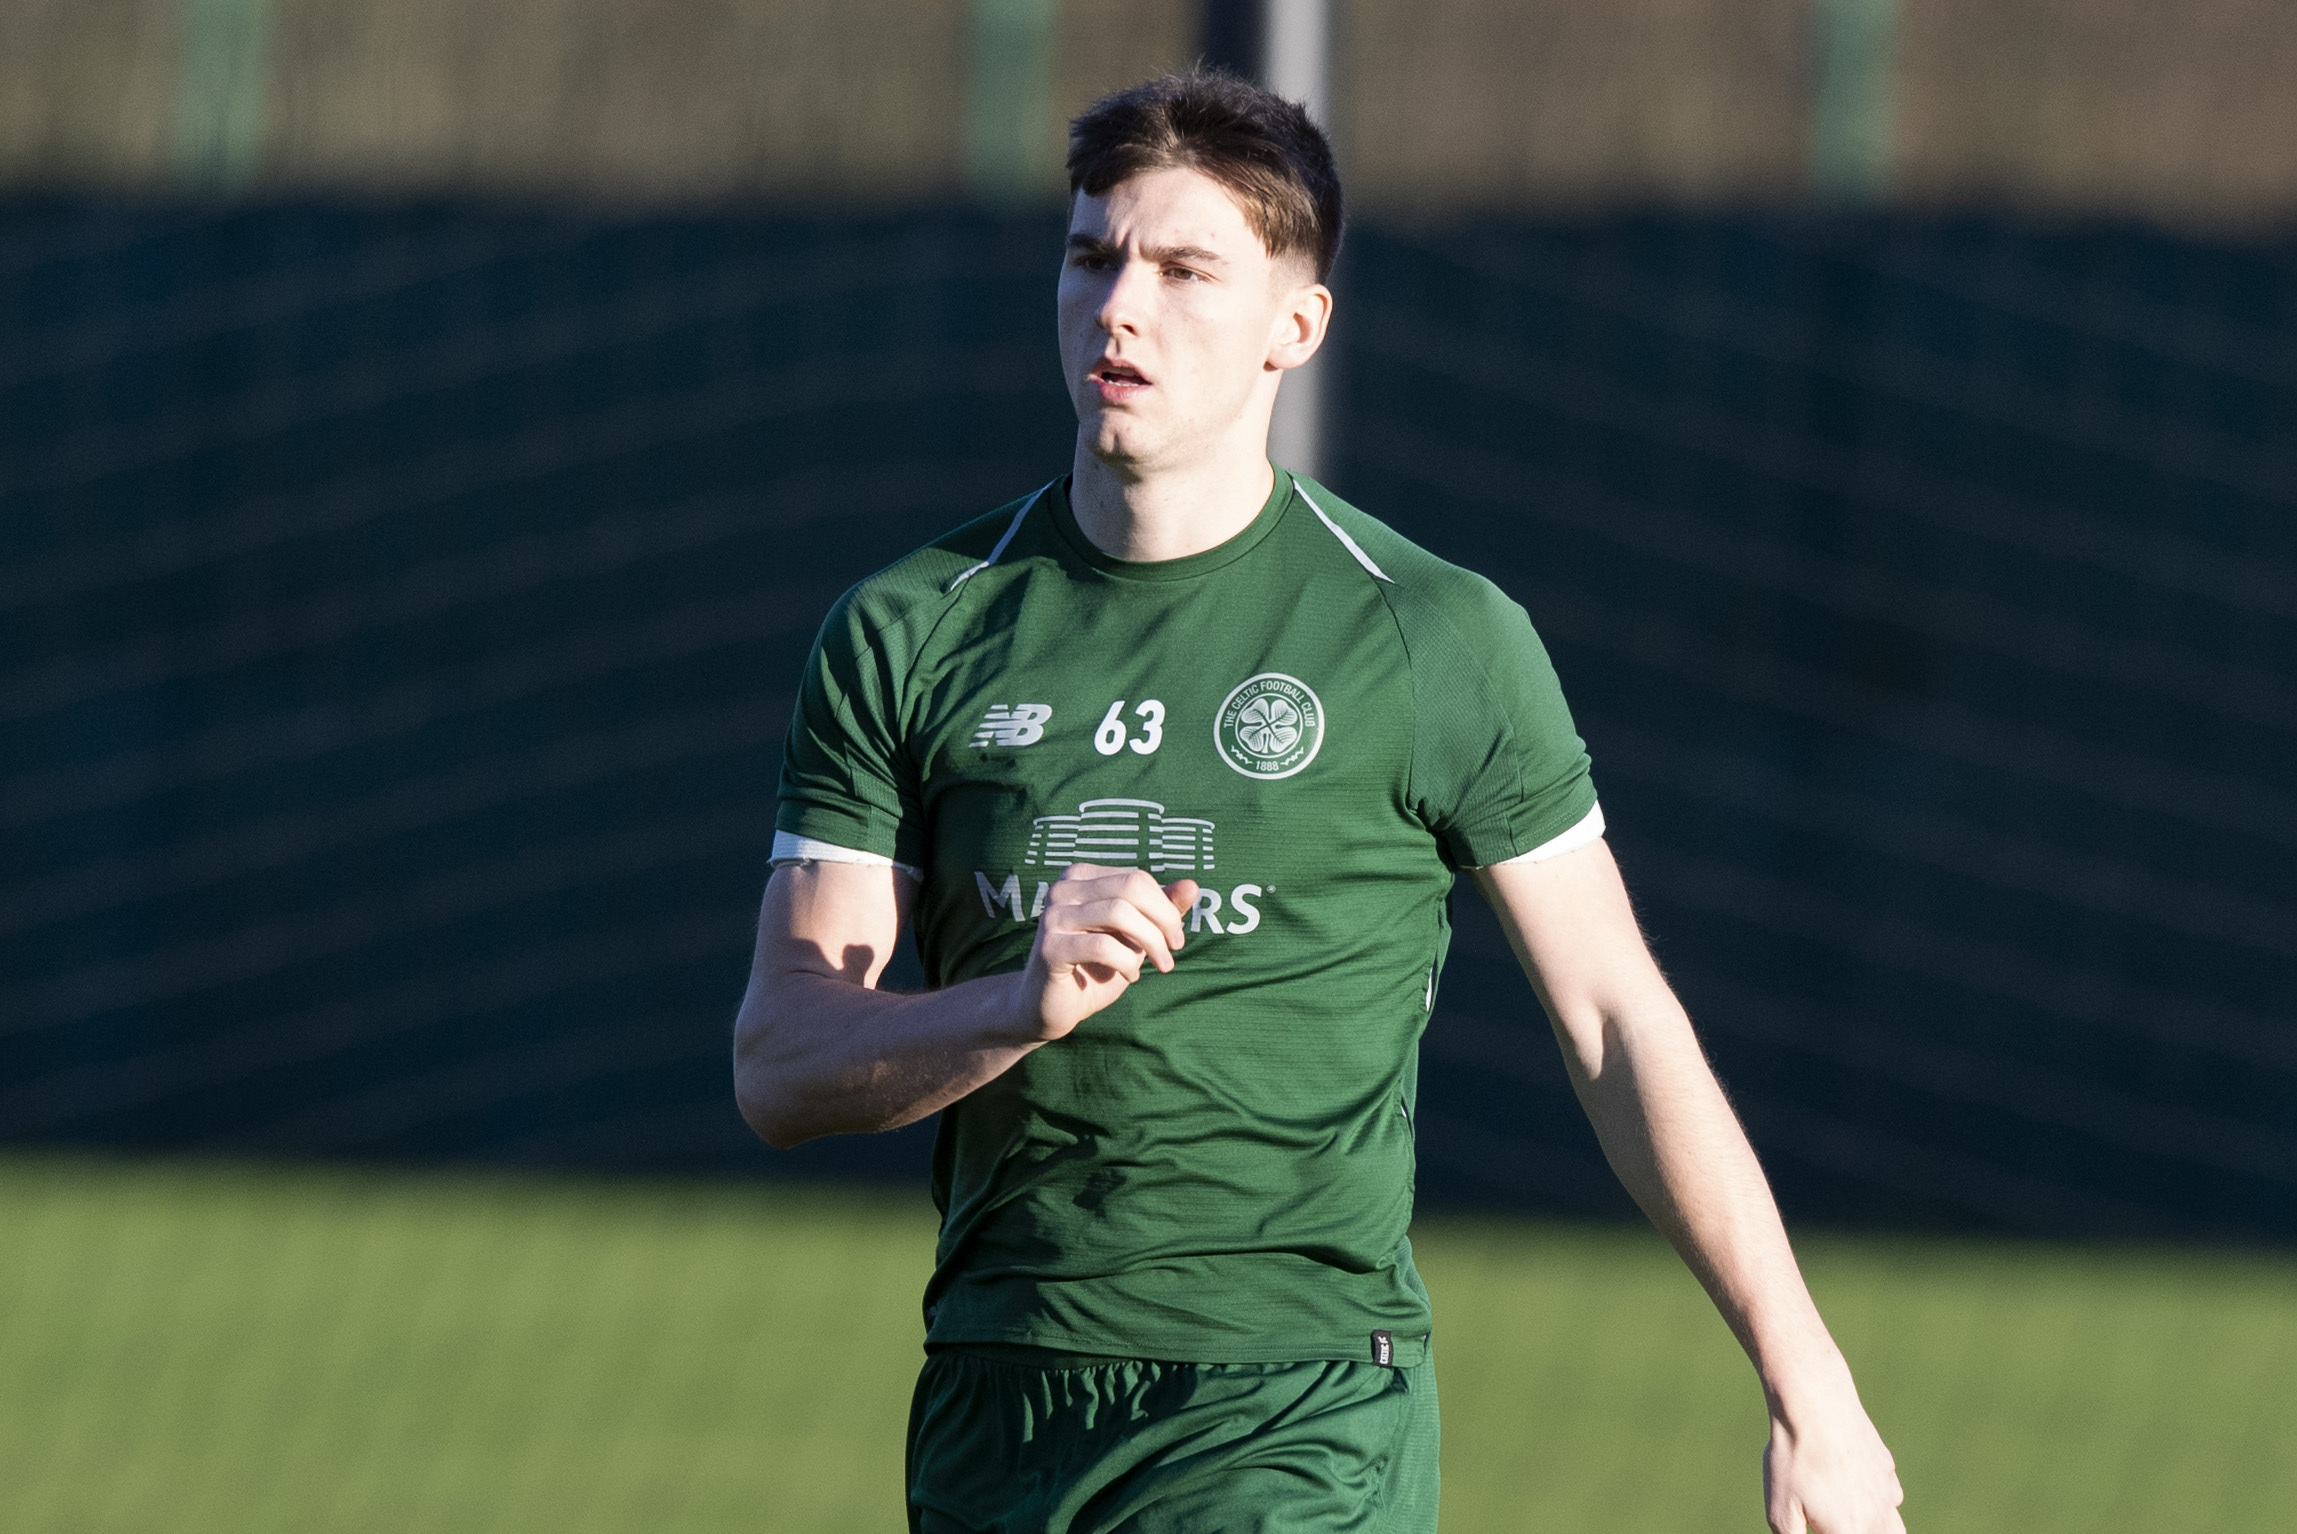 Celtic won't risk Kieran Tierney and can't rule out an operation for their star player